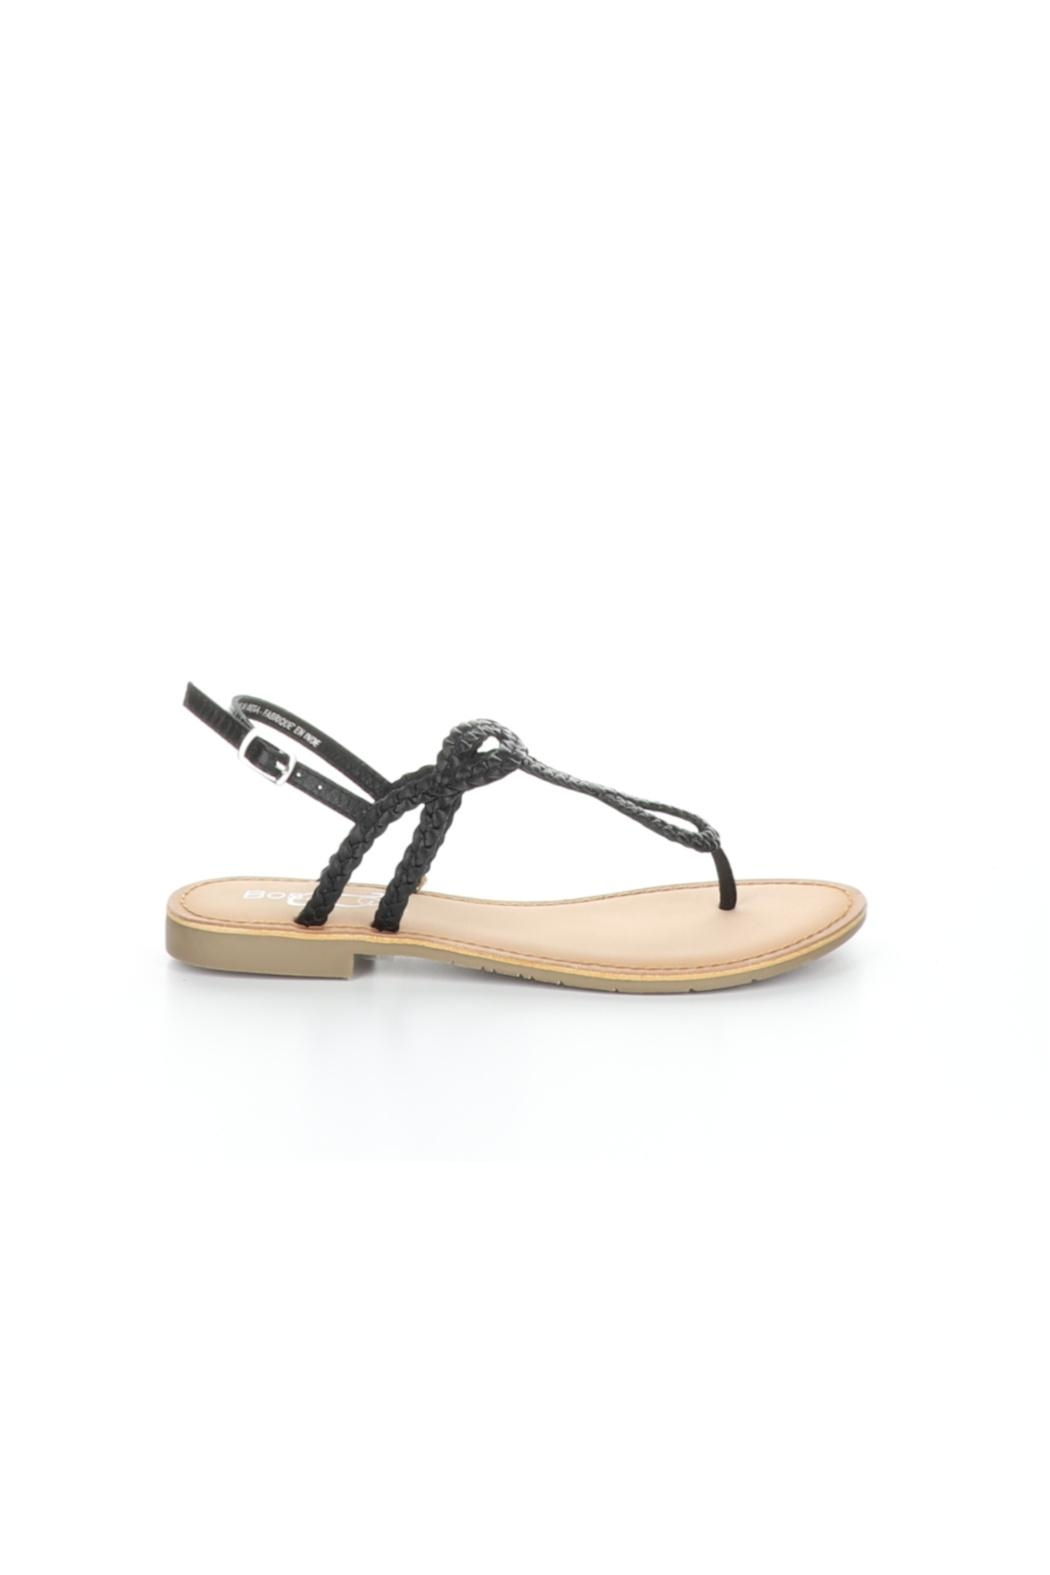 Bos and Co Gael Black Sandal - Front Full Image